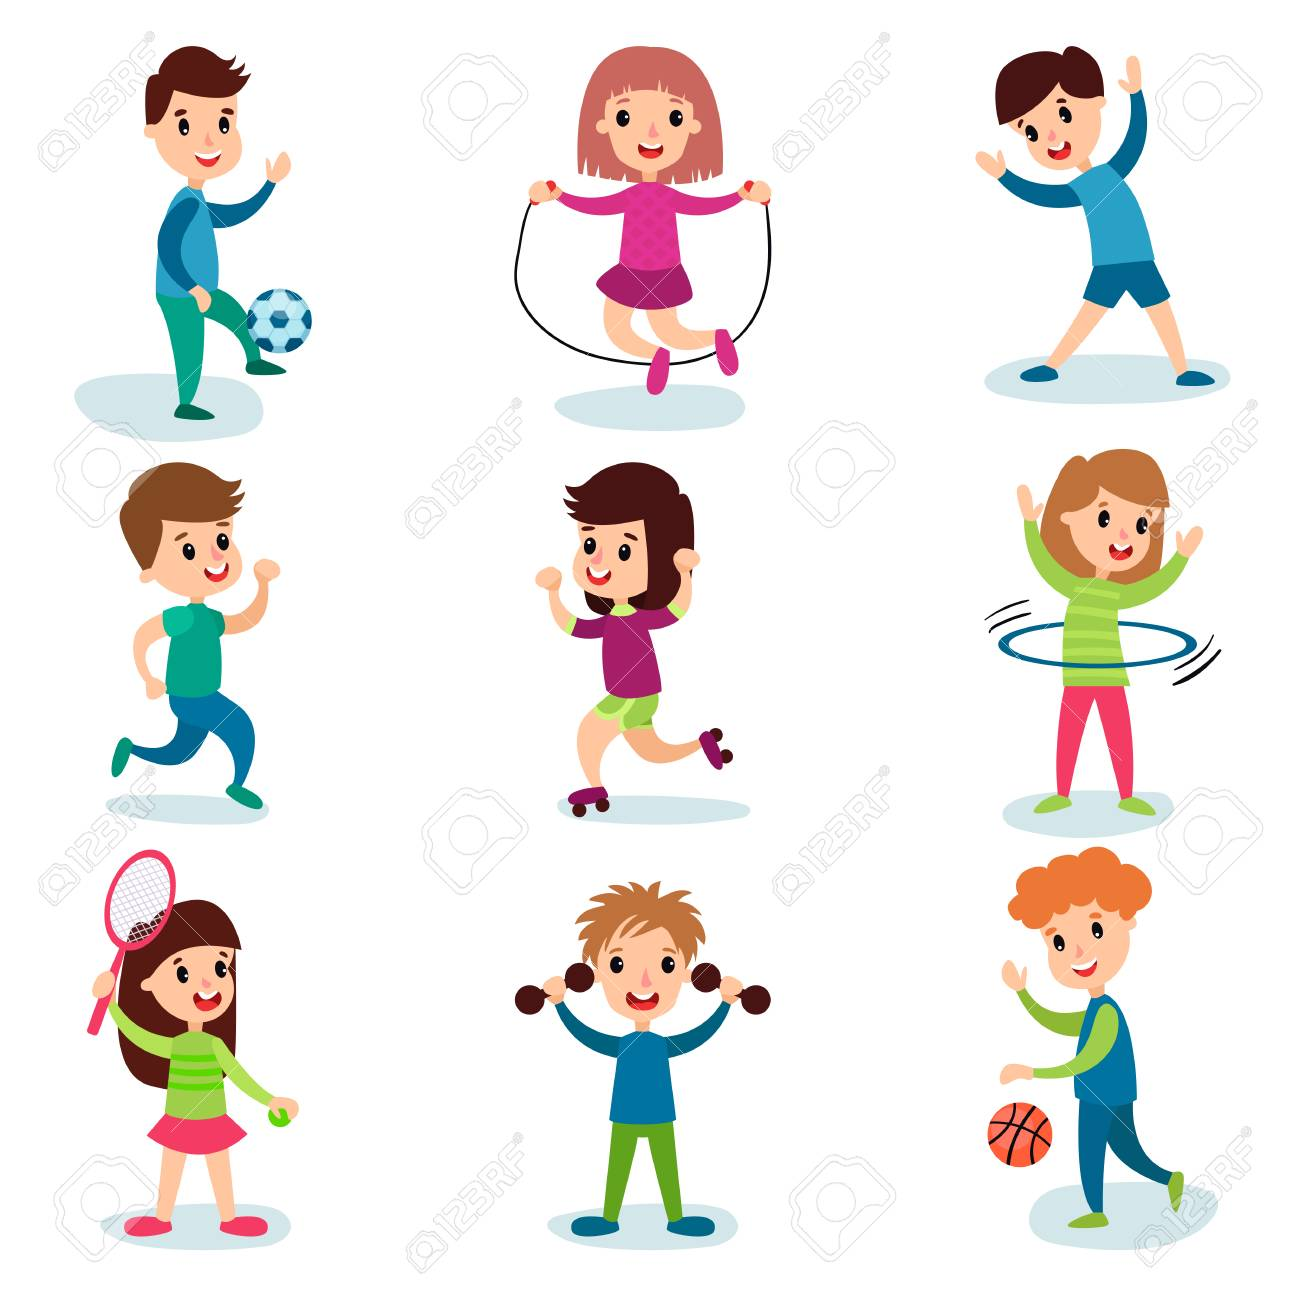 Smiling little kids characters doing different sports and playing sportive games, kids physical activity cartoon vector Illustrations - 90508871